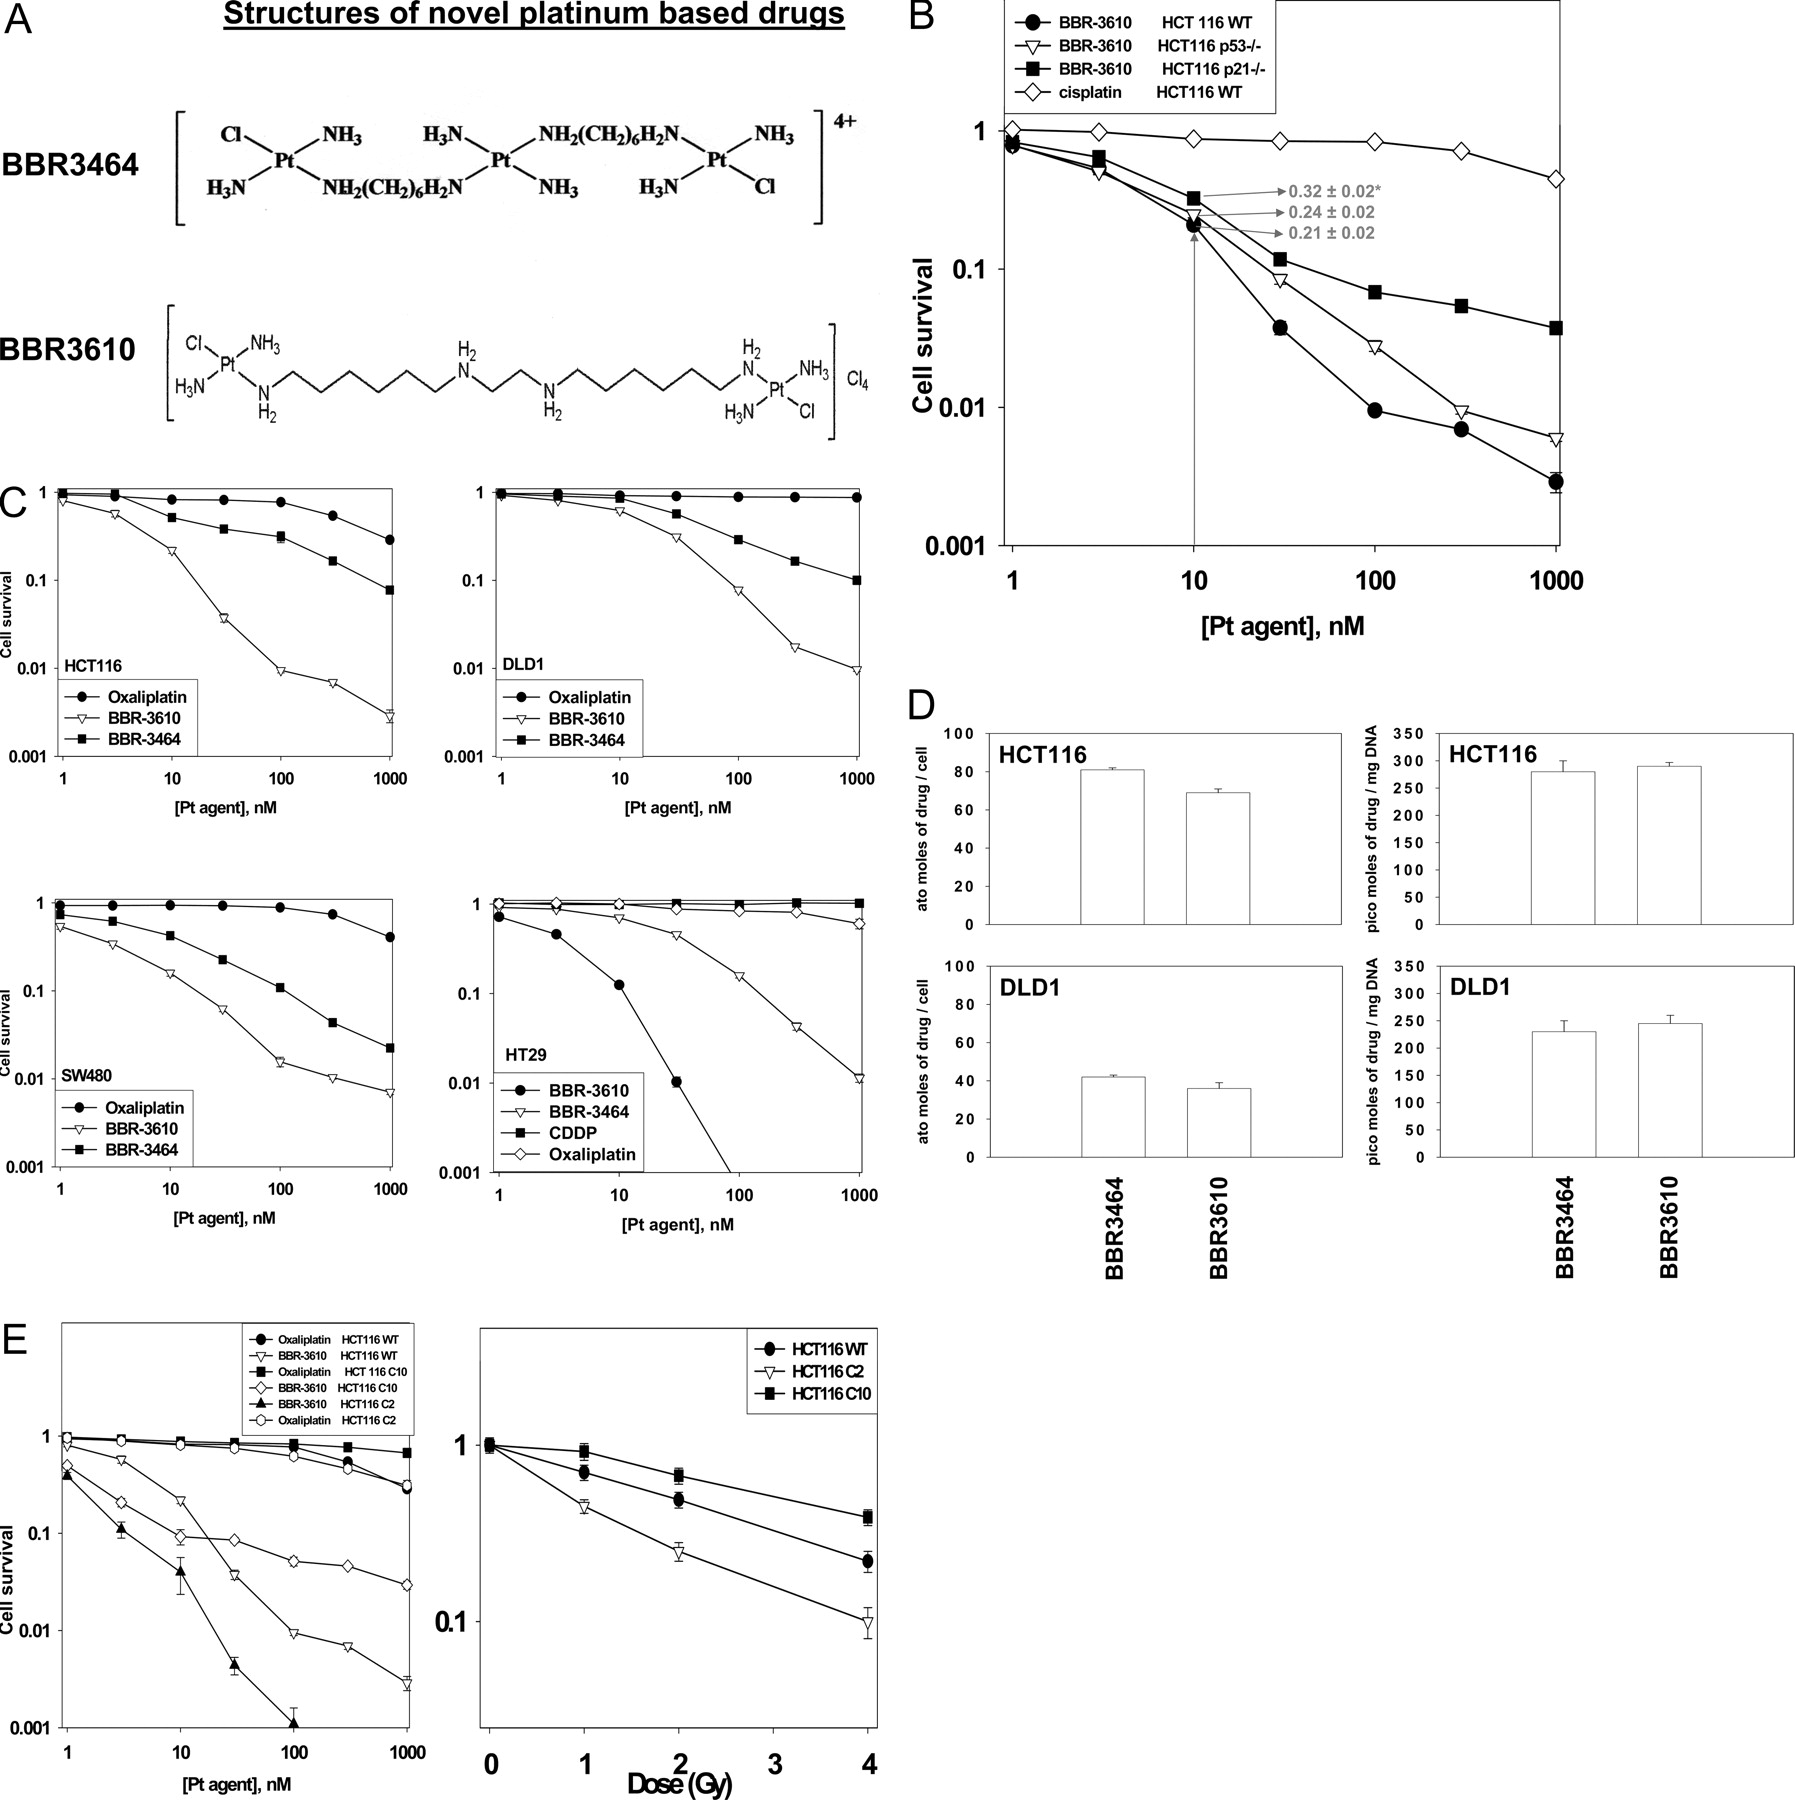 Fig 1 Low Dose Bbr3610 Toxicity In Colon Cancer Cells Is P53 Independent And Enhanced By Inhibition Of Epidermal Growth Factor Receptor Erbb1 Phosphatidyl Inositol 3 Kinase Signaling Molecular Pharmacology